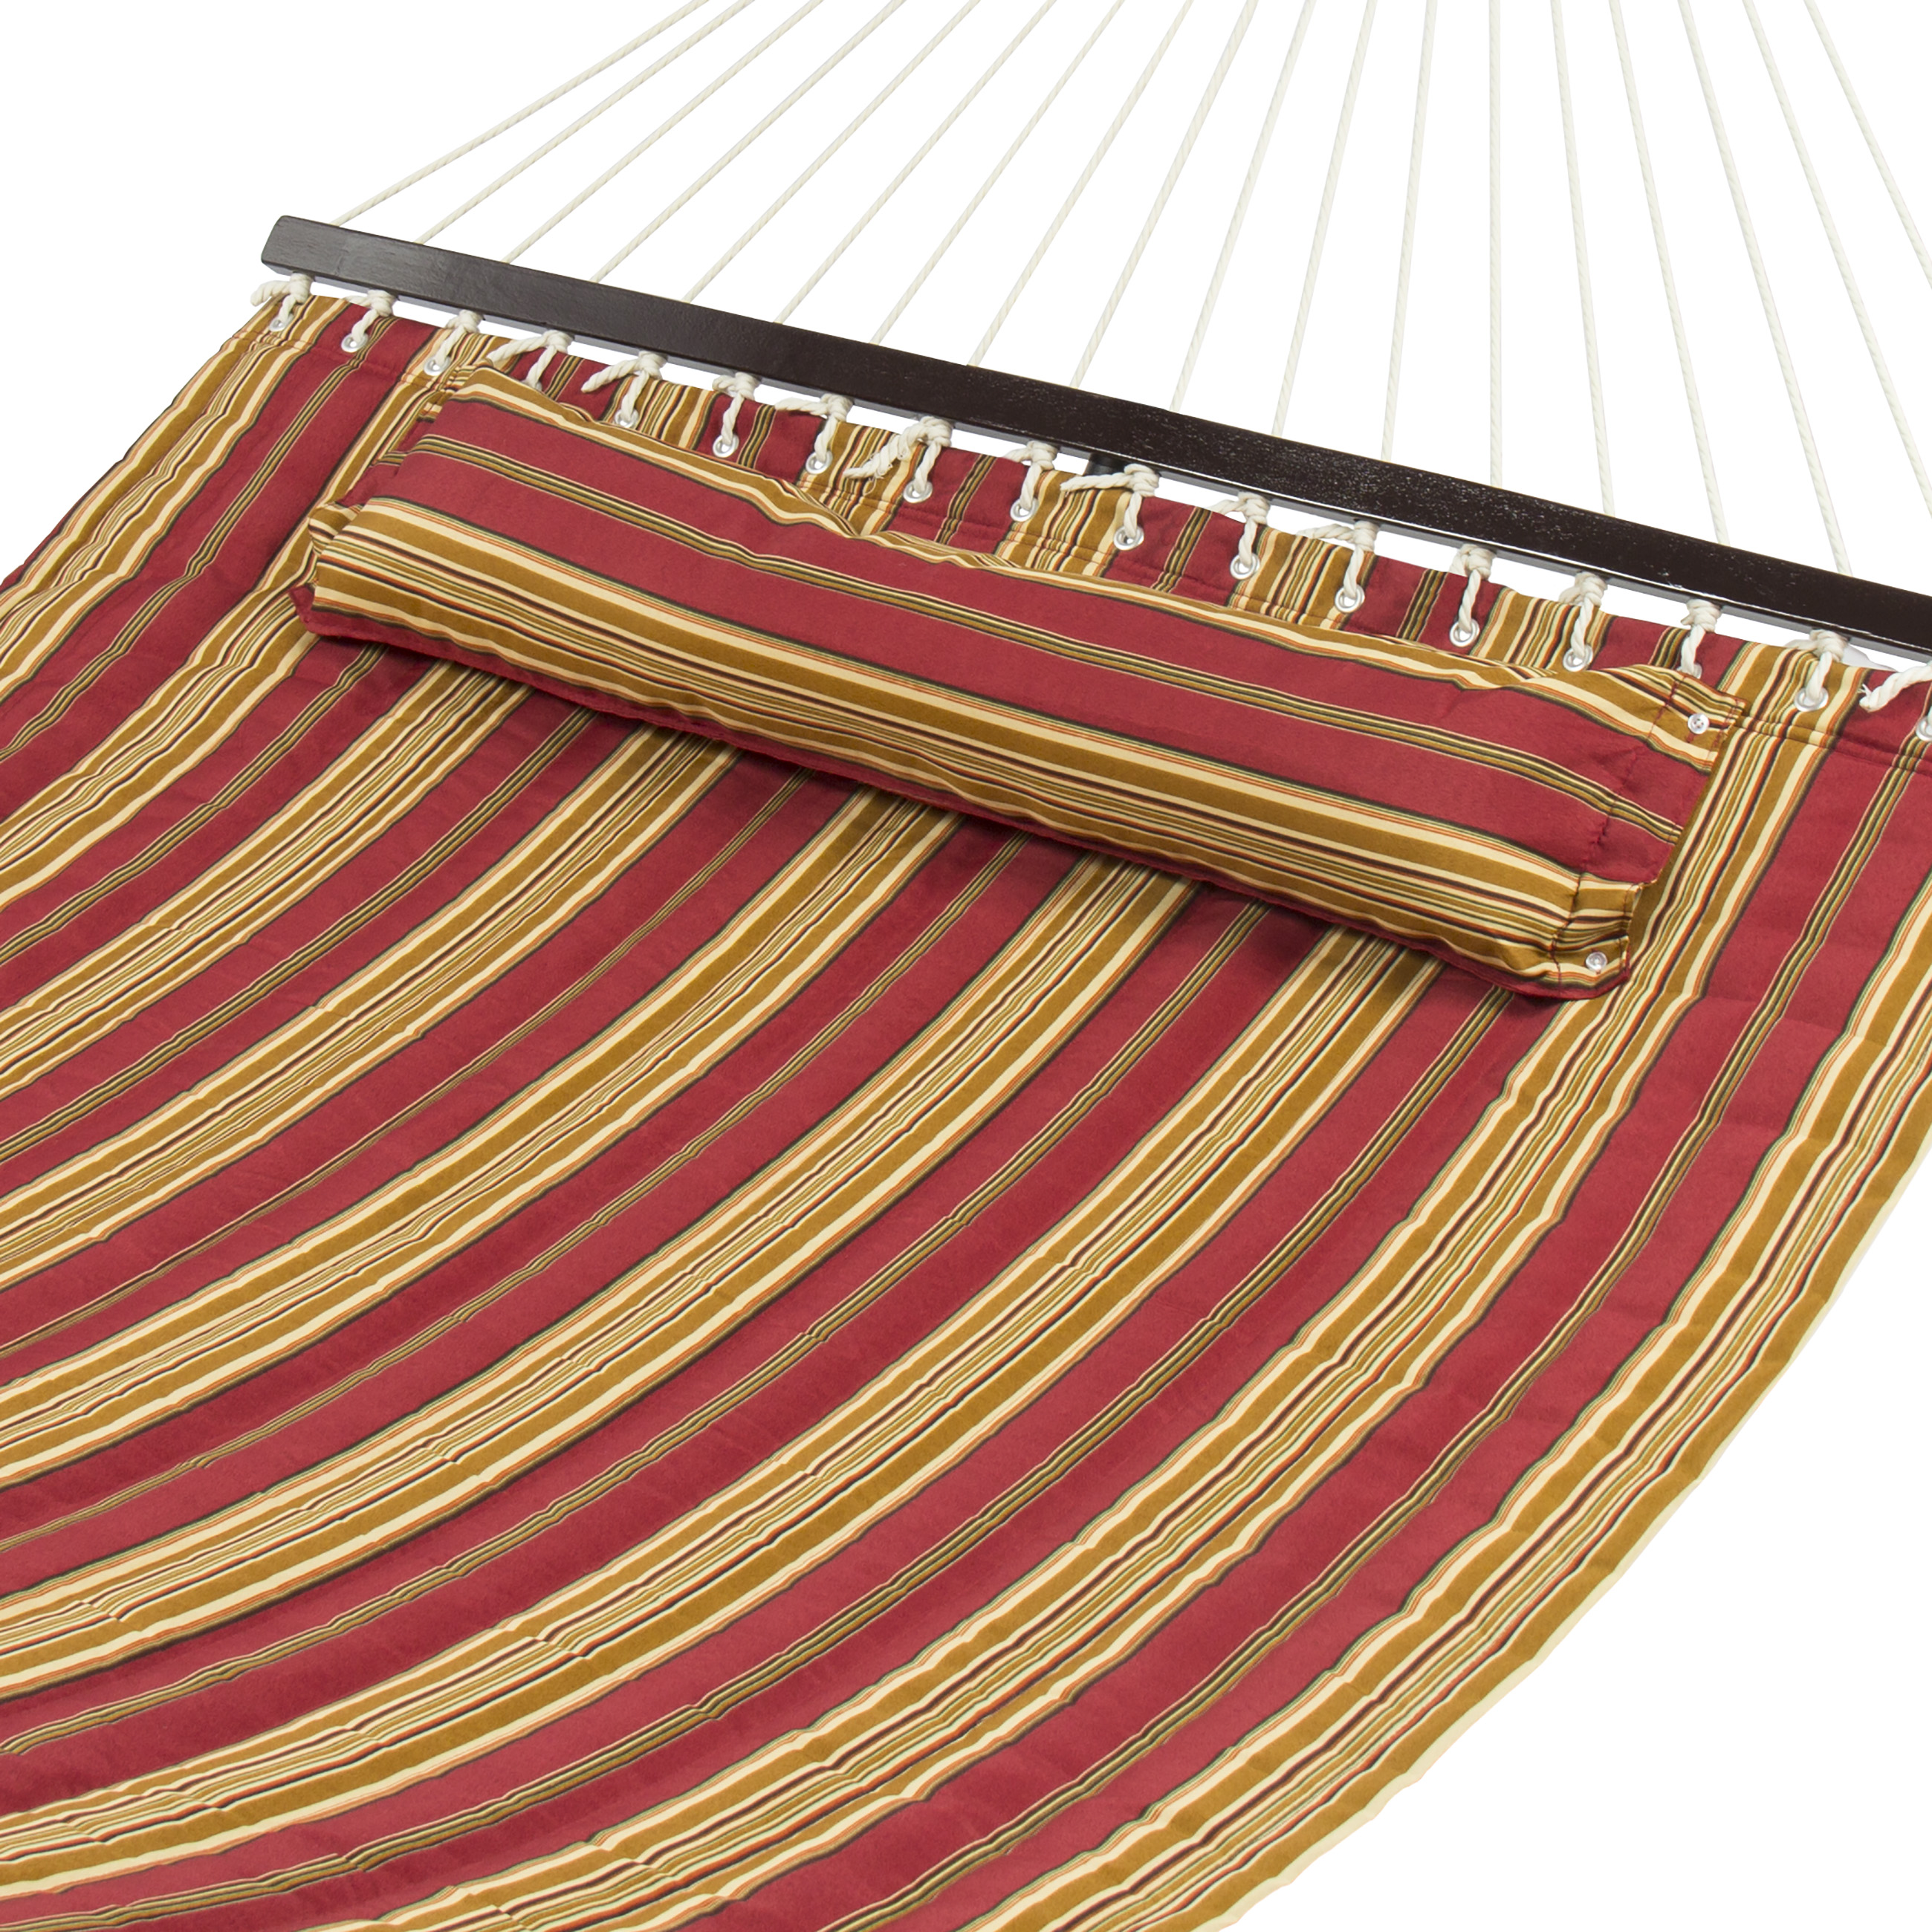 Best Choice Products Quilted Double Hammock w  Detachable Pillow, Spreader Bar Burgundy and Tan Stripe by Best Choice Products